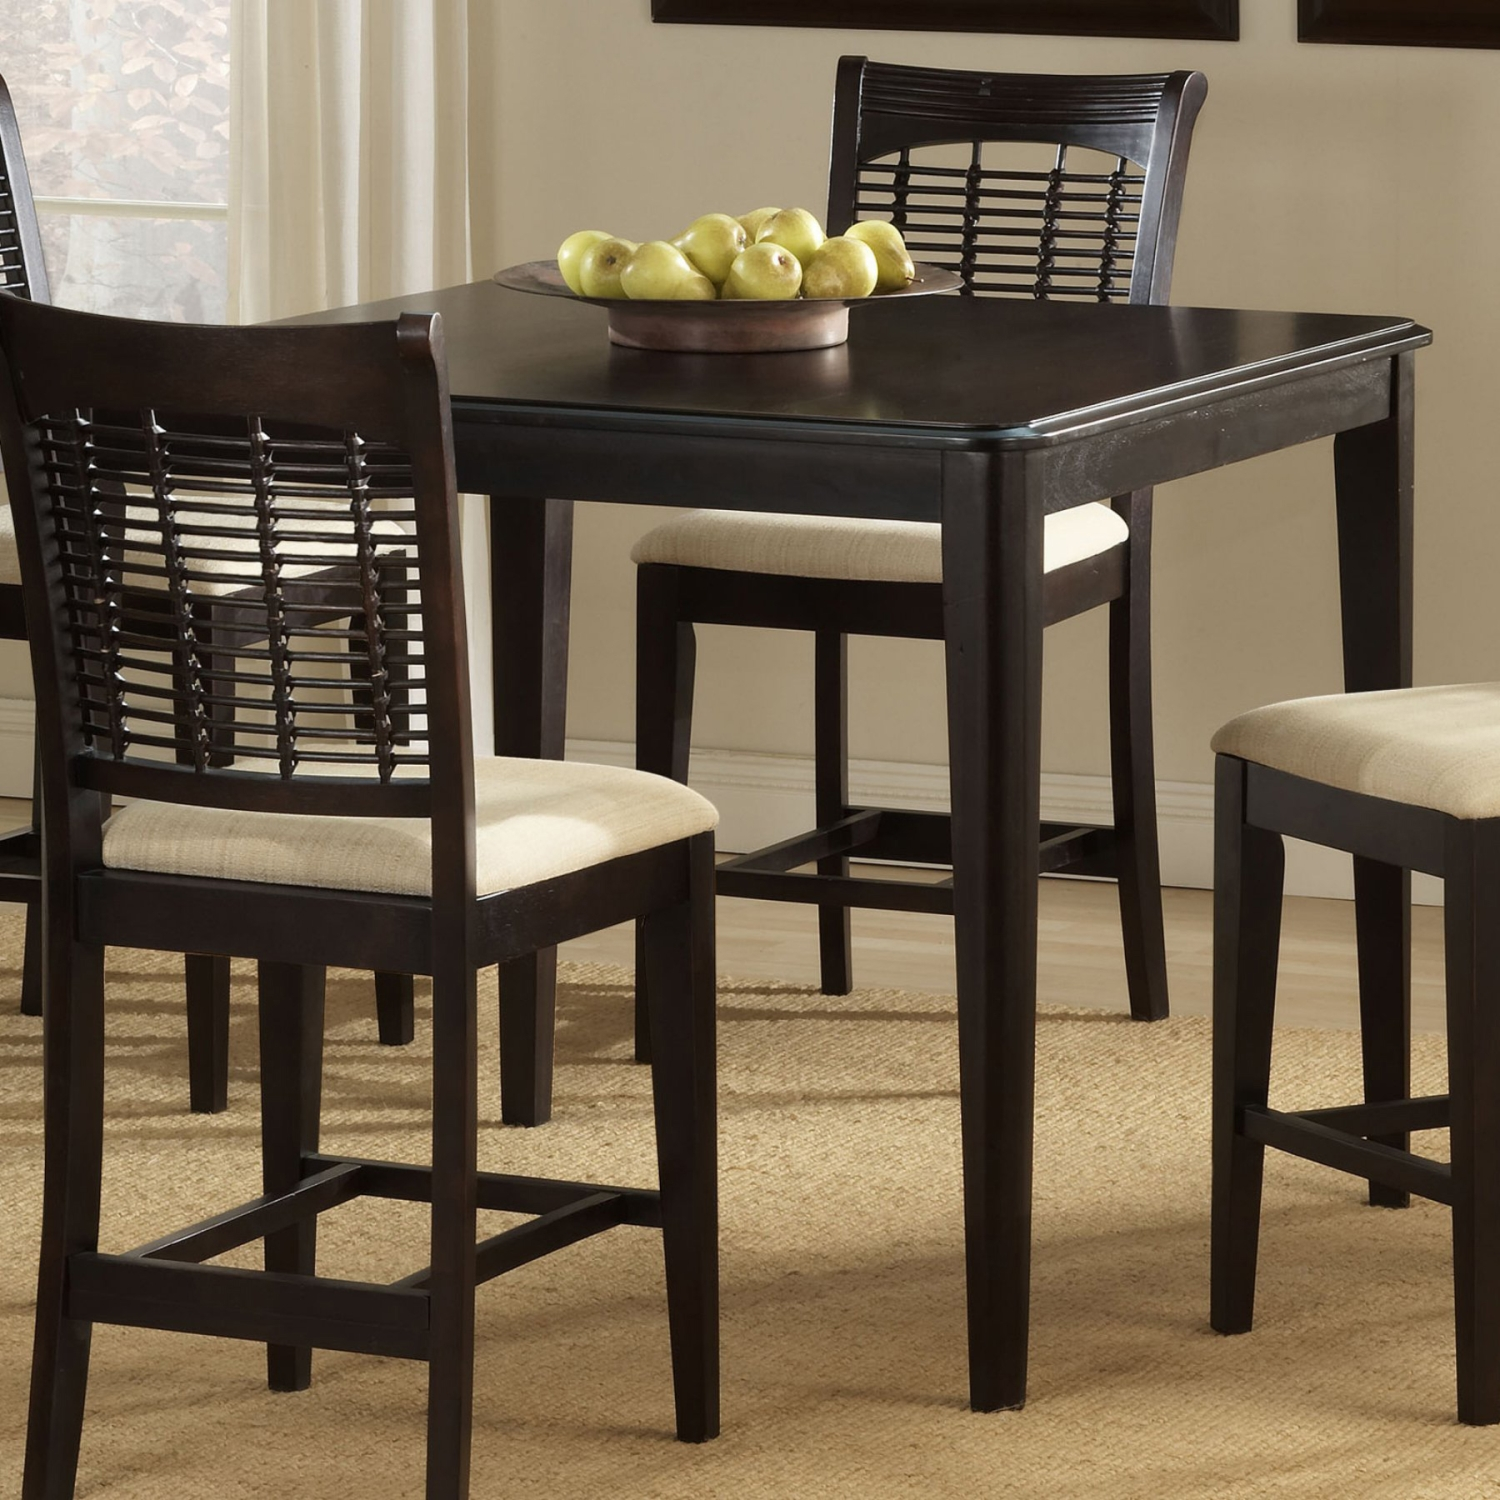 Hillsdale Bayberry Gathering Dining Table, Dark Cherry